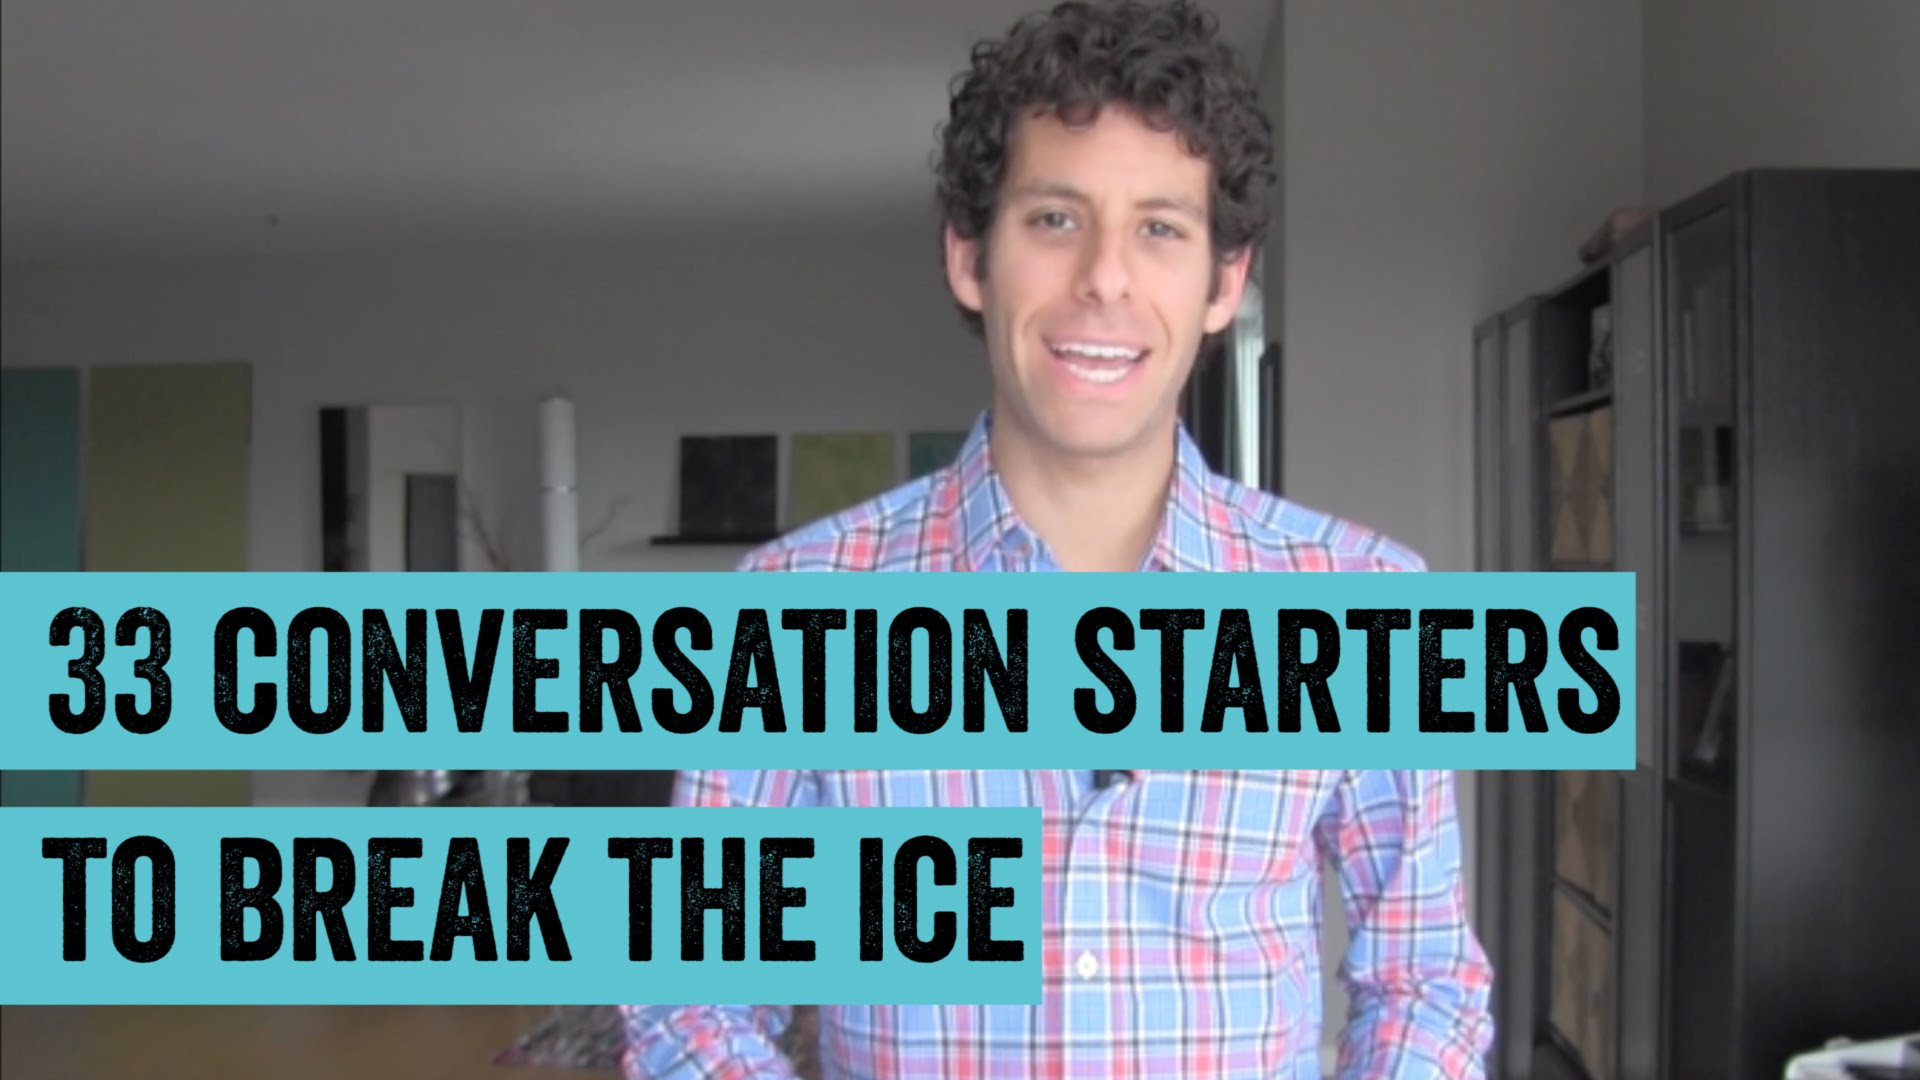 Breaking the ice with a girl